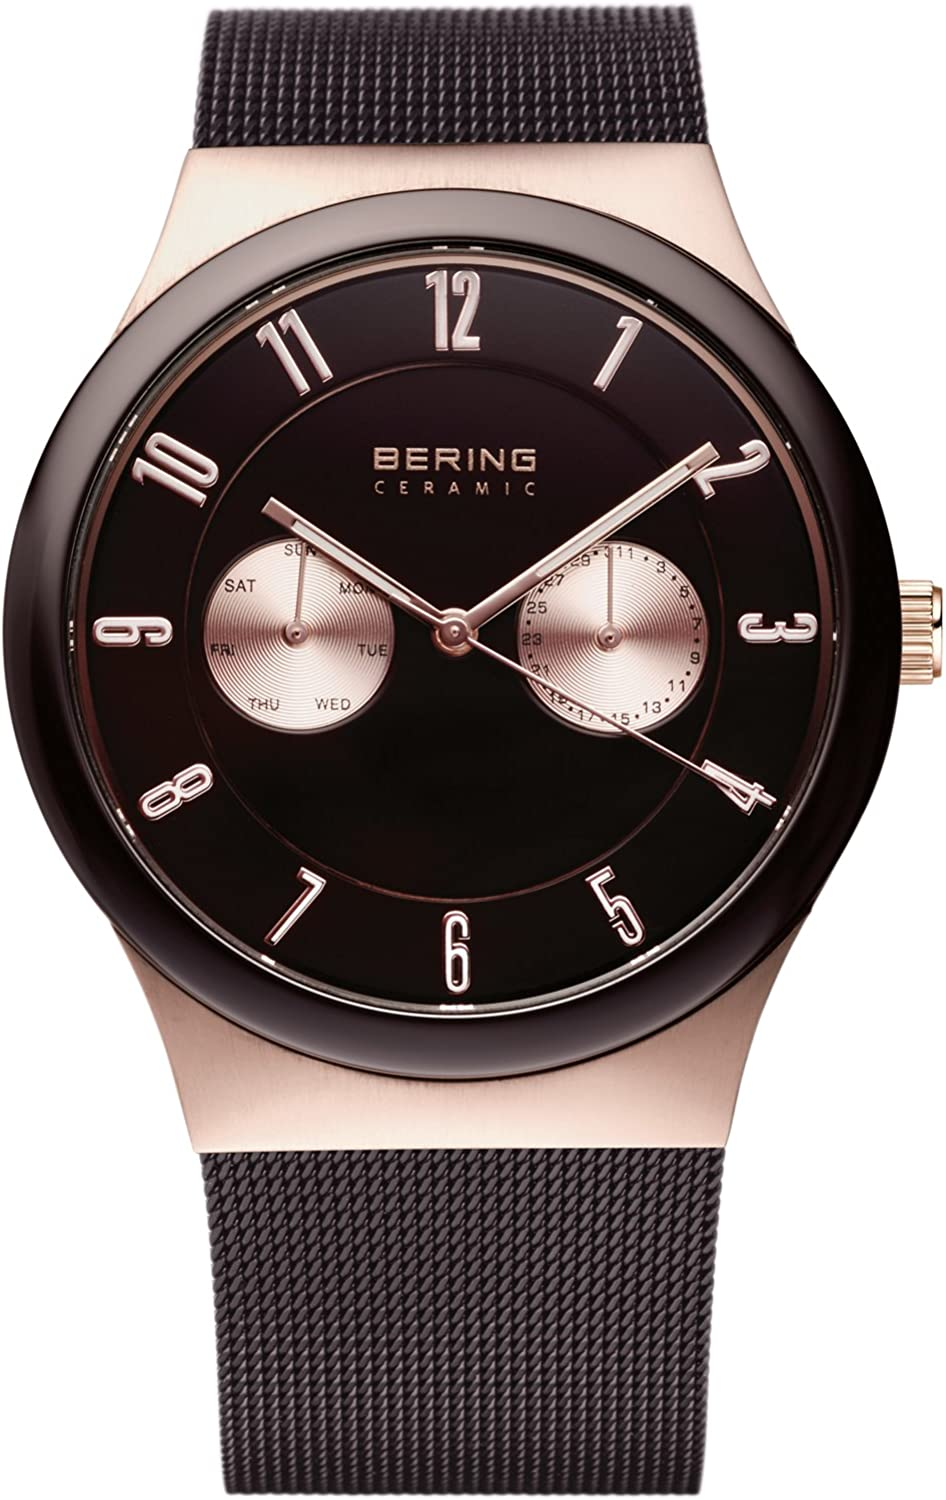 BERING Time 32139-265 Ceramic Collection Watch with Mesh Band and Scratch Resistant Sapphire Crystal. Designed in Denmark.